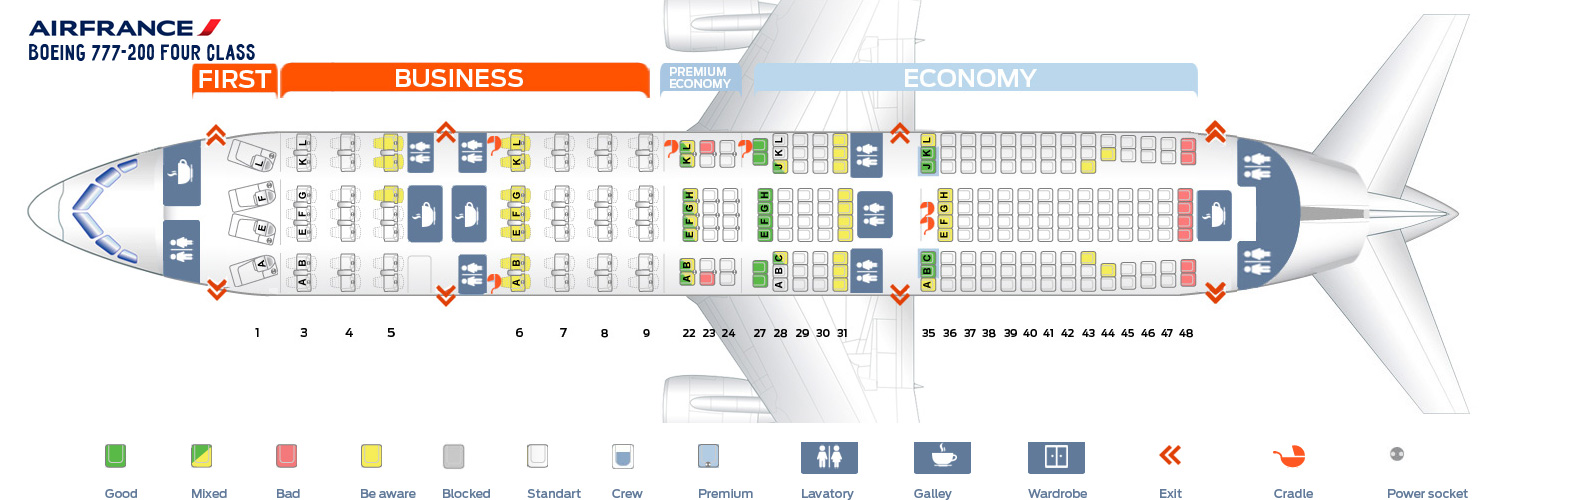 Seat Map Boeing 777-200 Four Class Air France